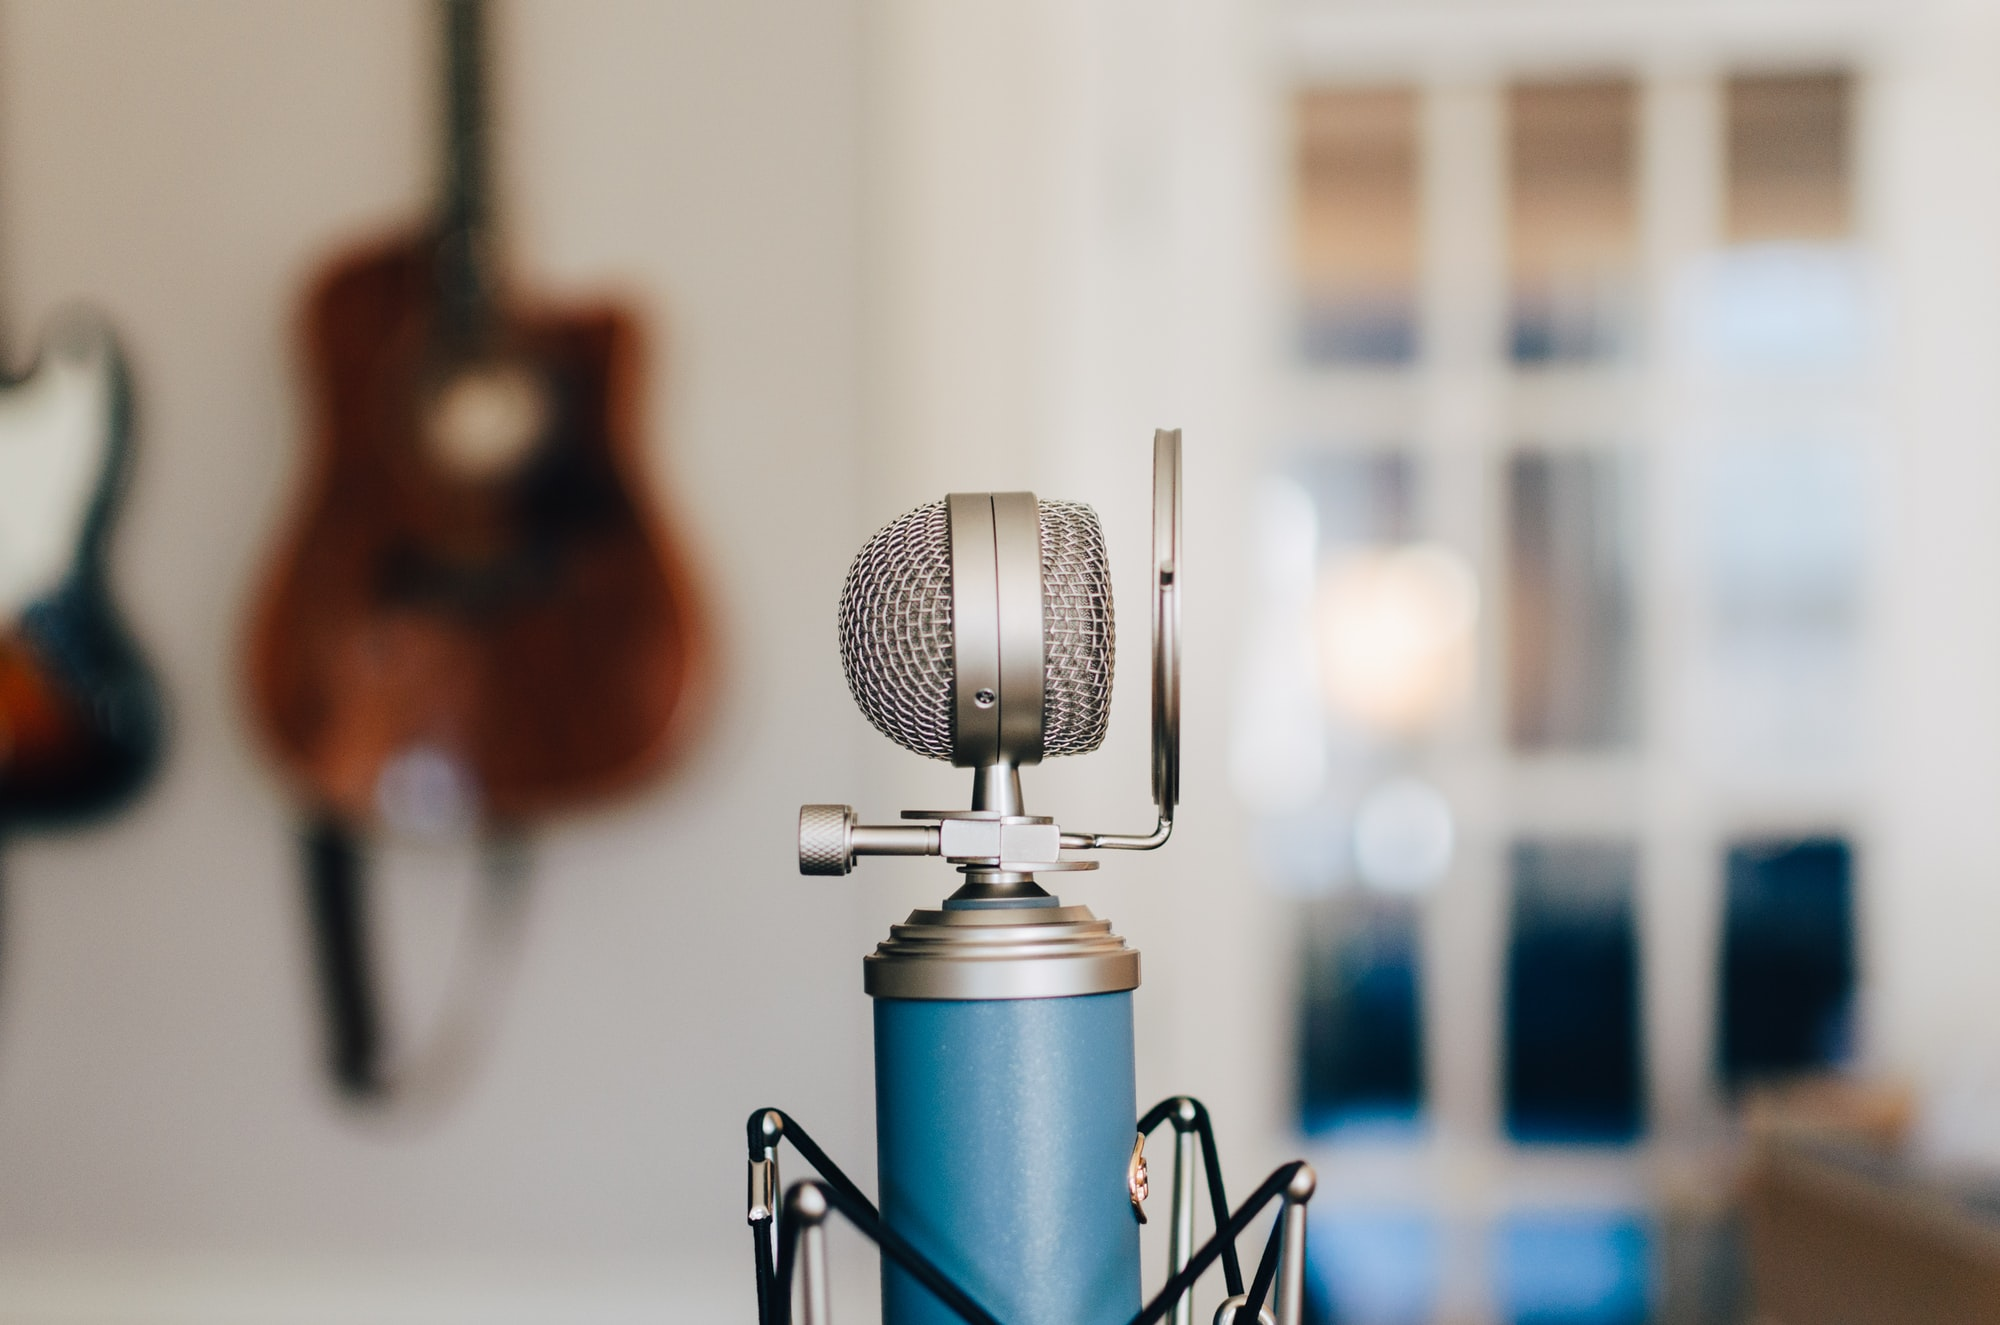 Capture Killer Vocals! Vocal Tracking Tips from Studio Pros